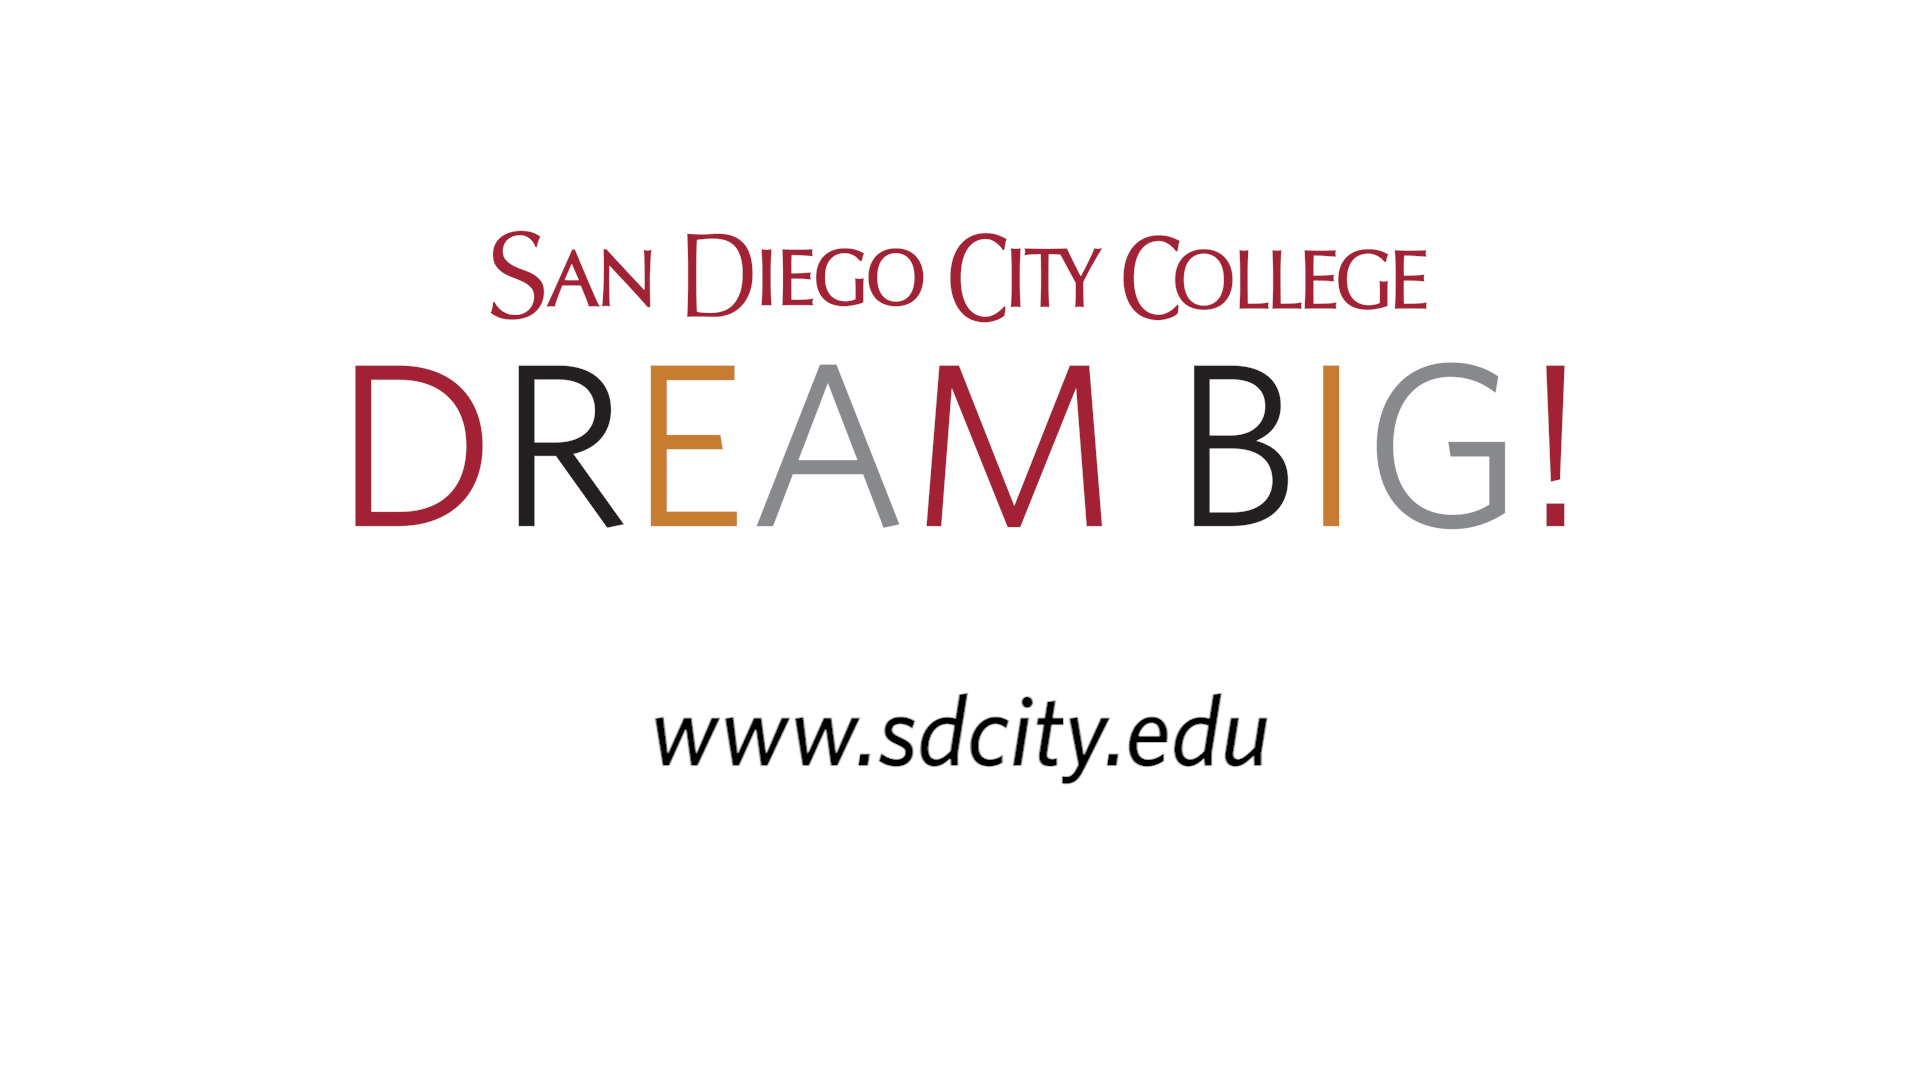 Dream Big at San Diego City College